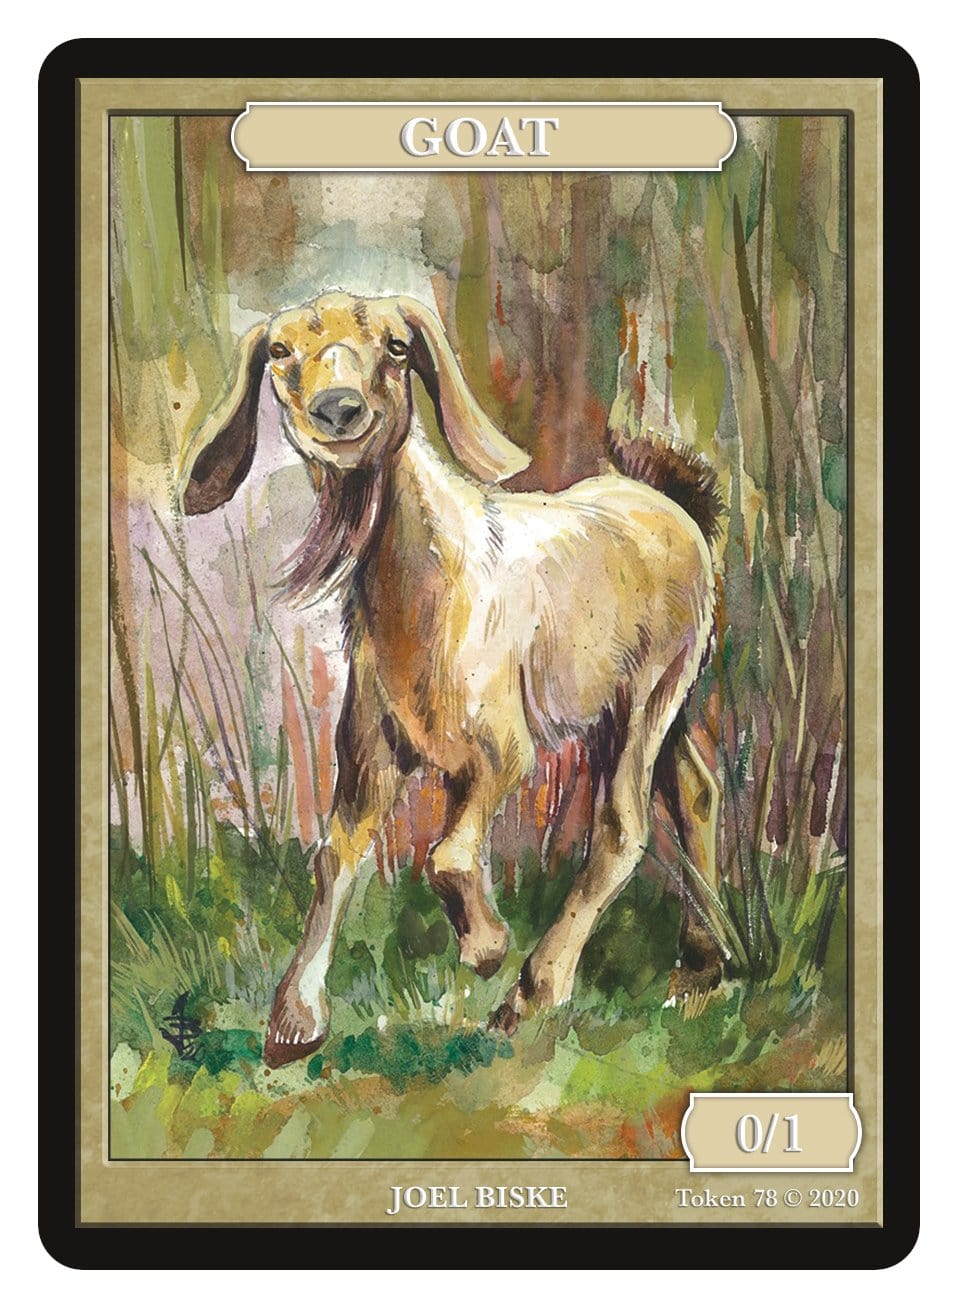 Goat Token (0/1) by Joel Biske